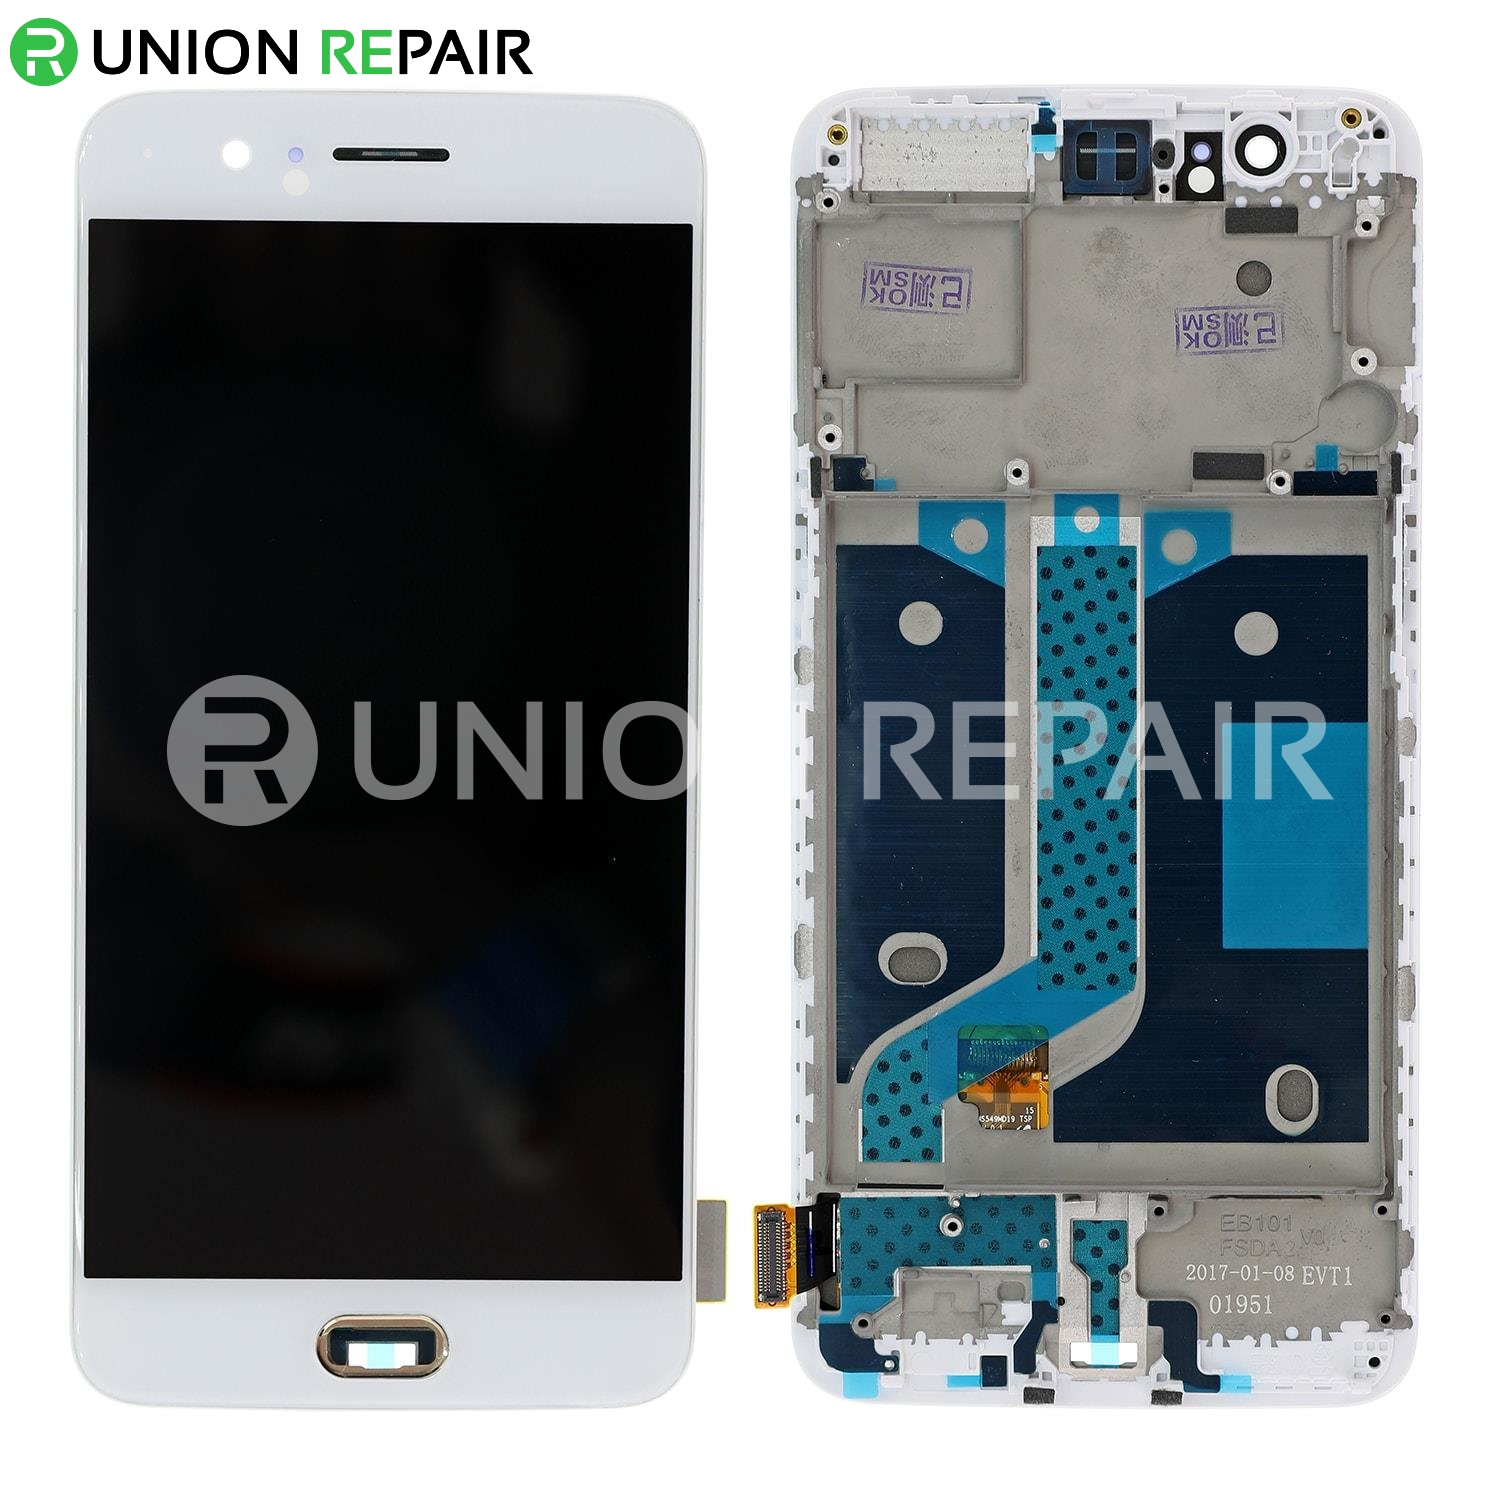 Replacement for OnePlus 5 LCD Screen Digitizer Assembly With Front Housing - White